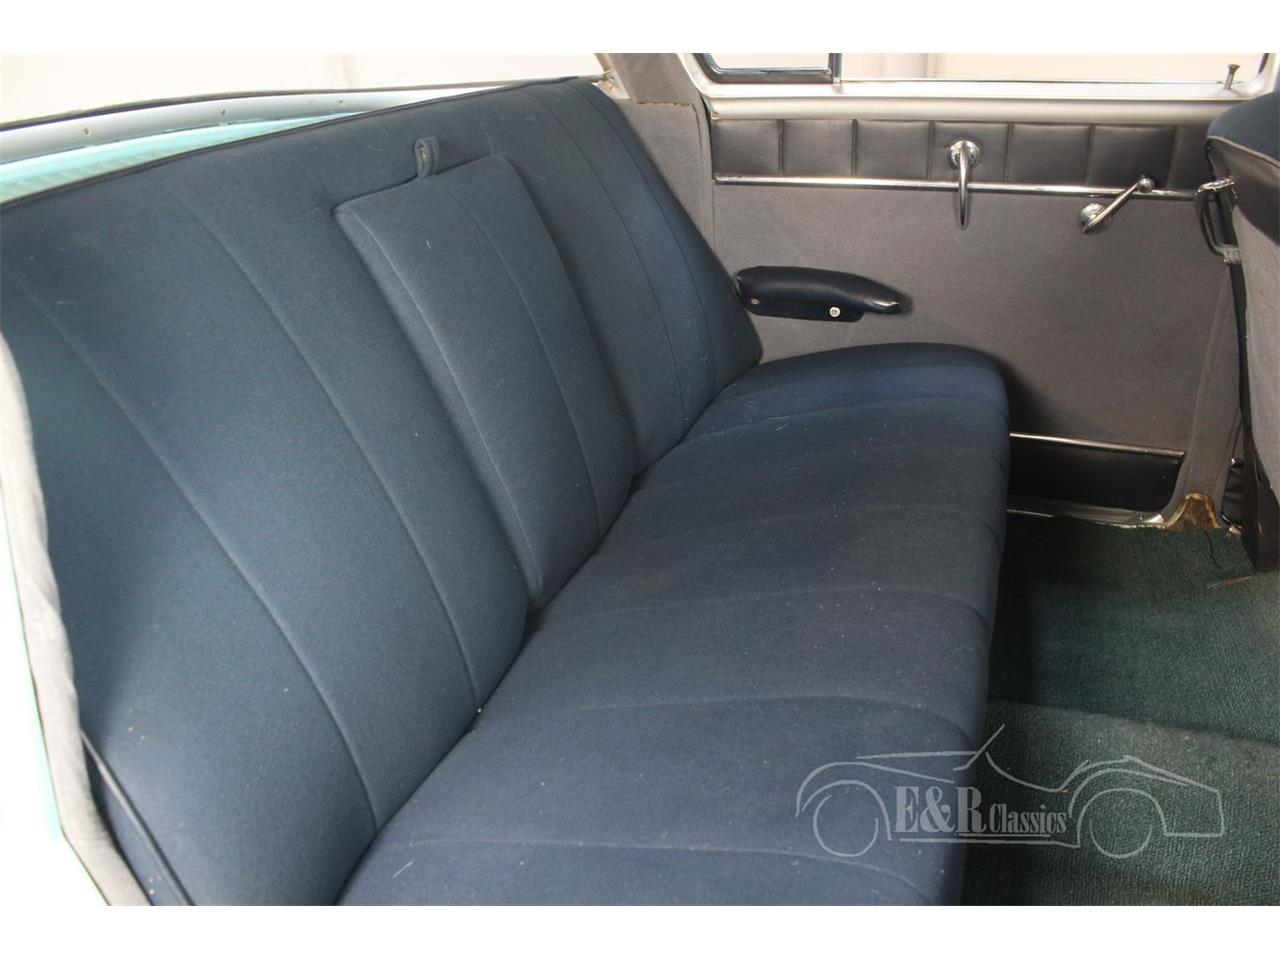 Large Picture of '54 Chrysler Windsor located in noord brabant - $19,000.00 - QJZL